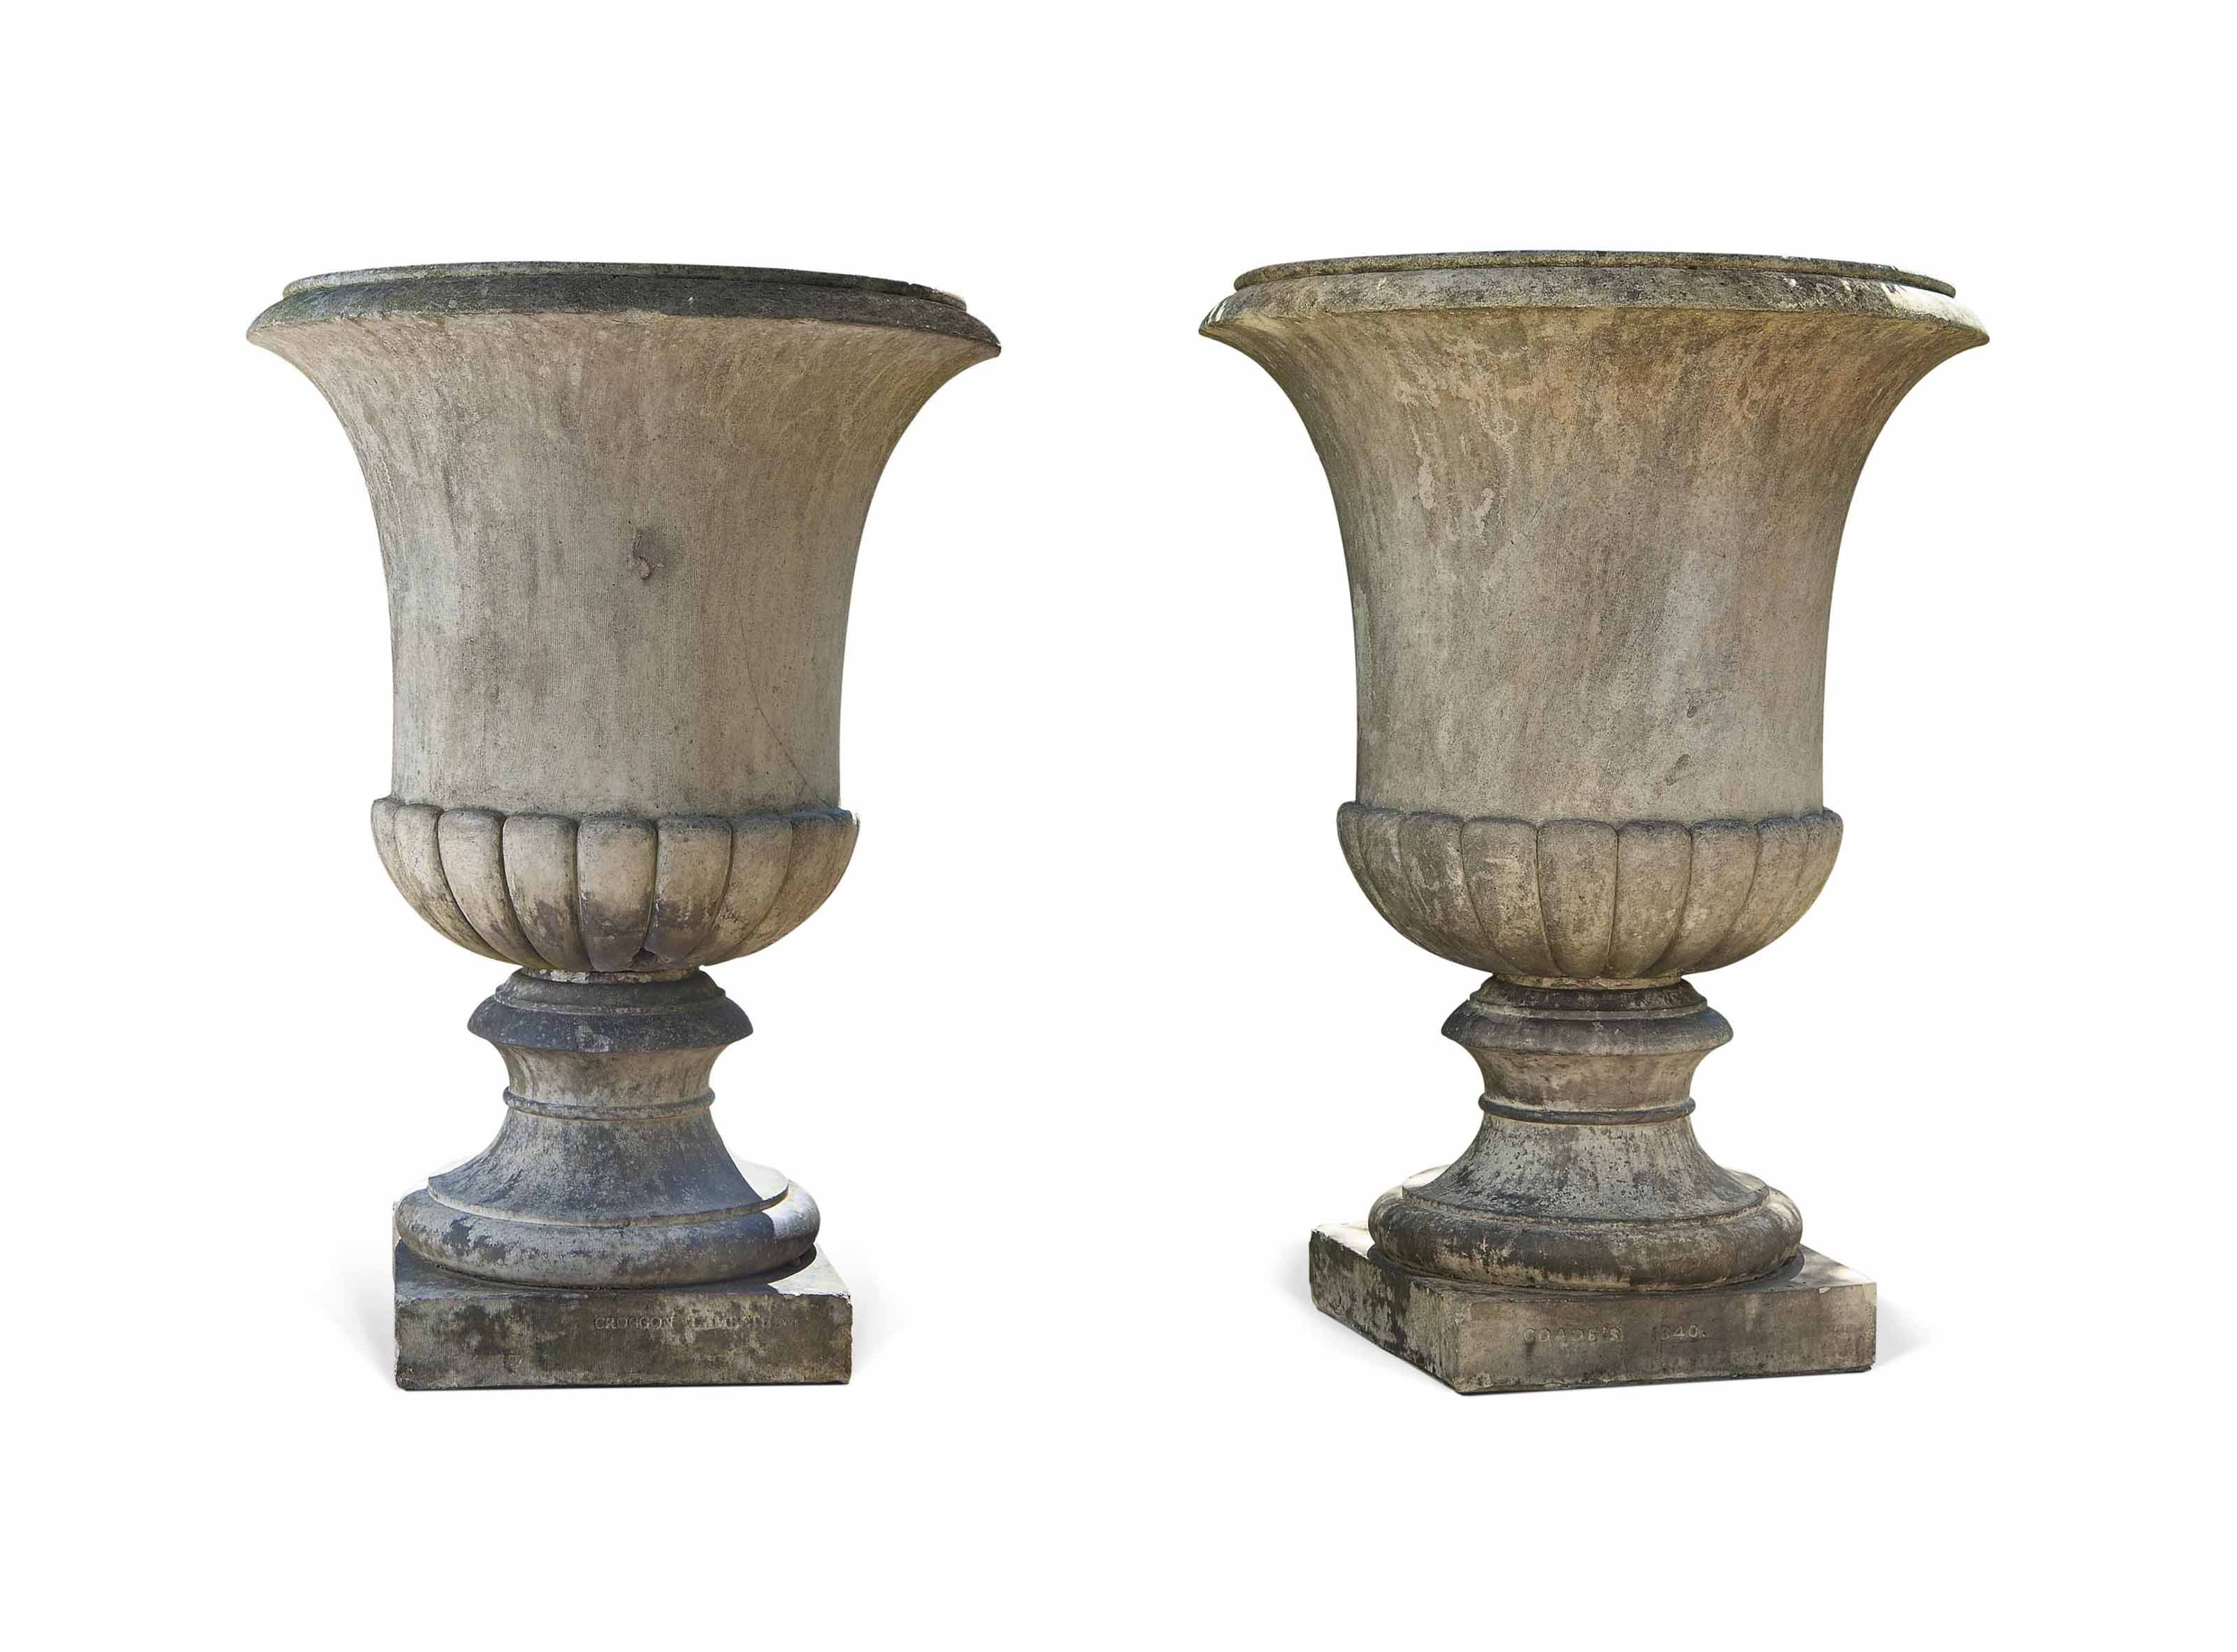 A MATCHED PAIR OF ARTIFICIAL 'COADE' STONE URNS